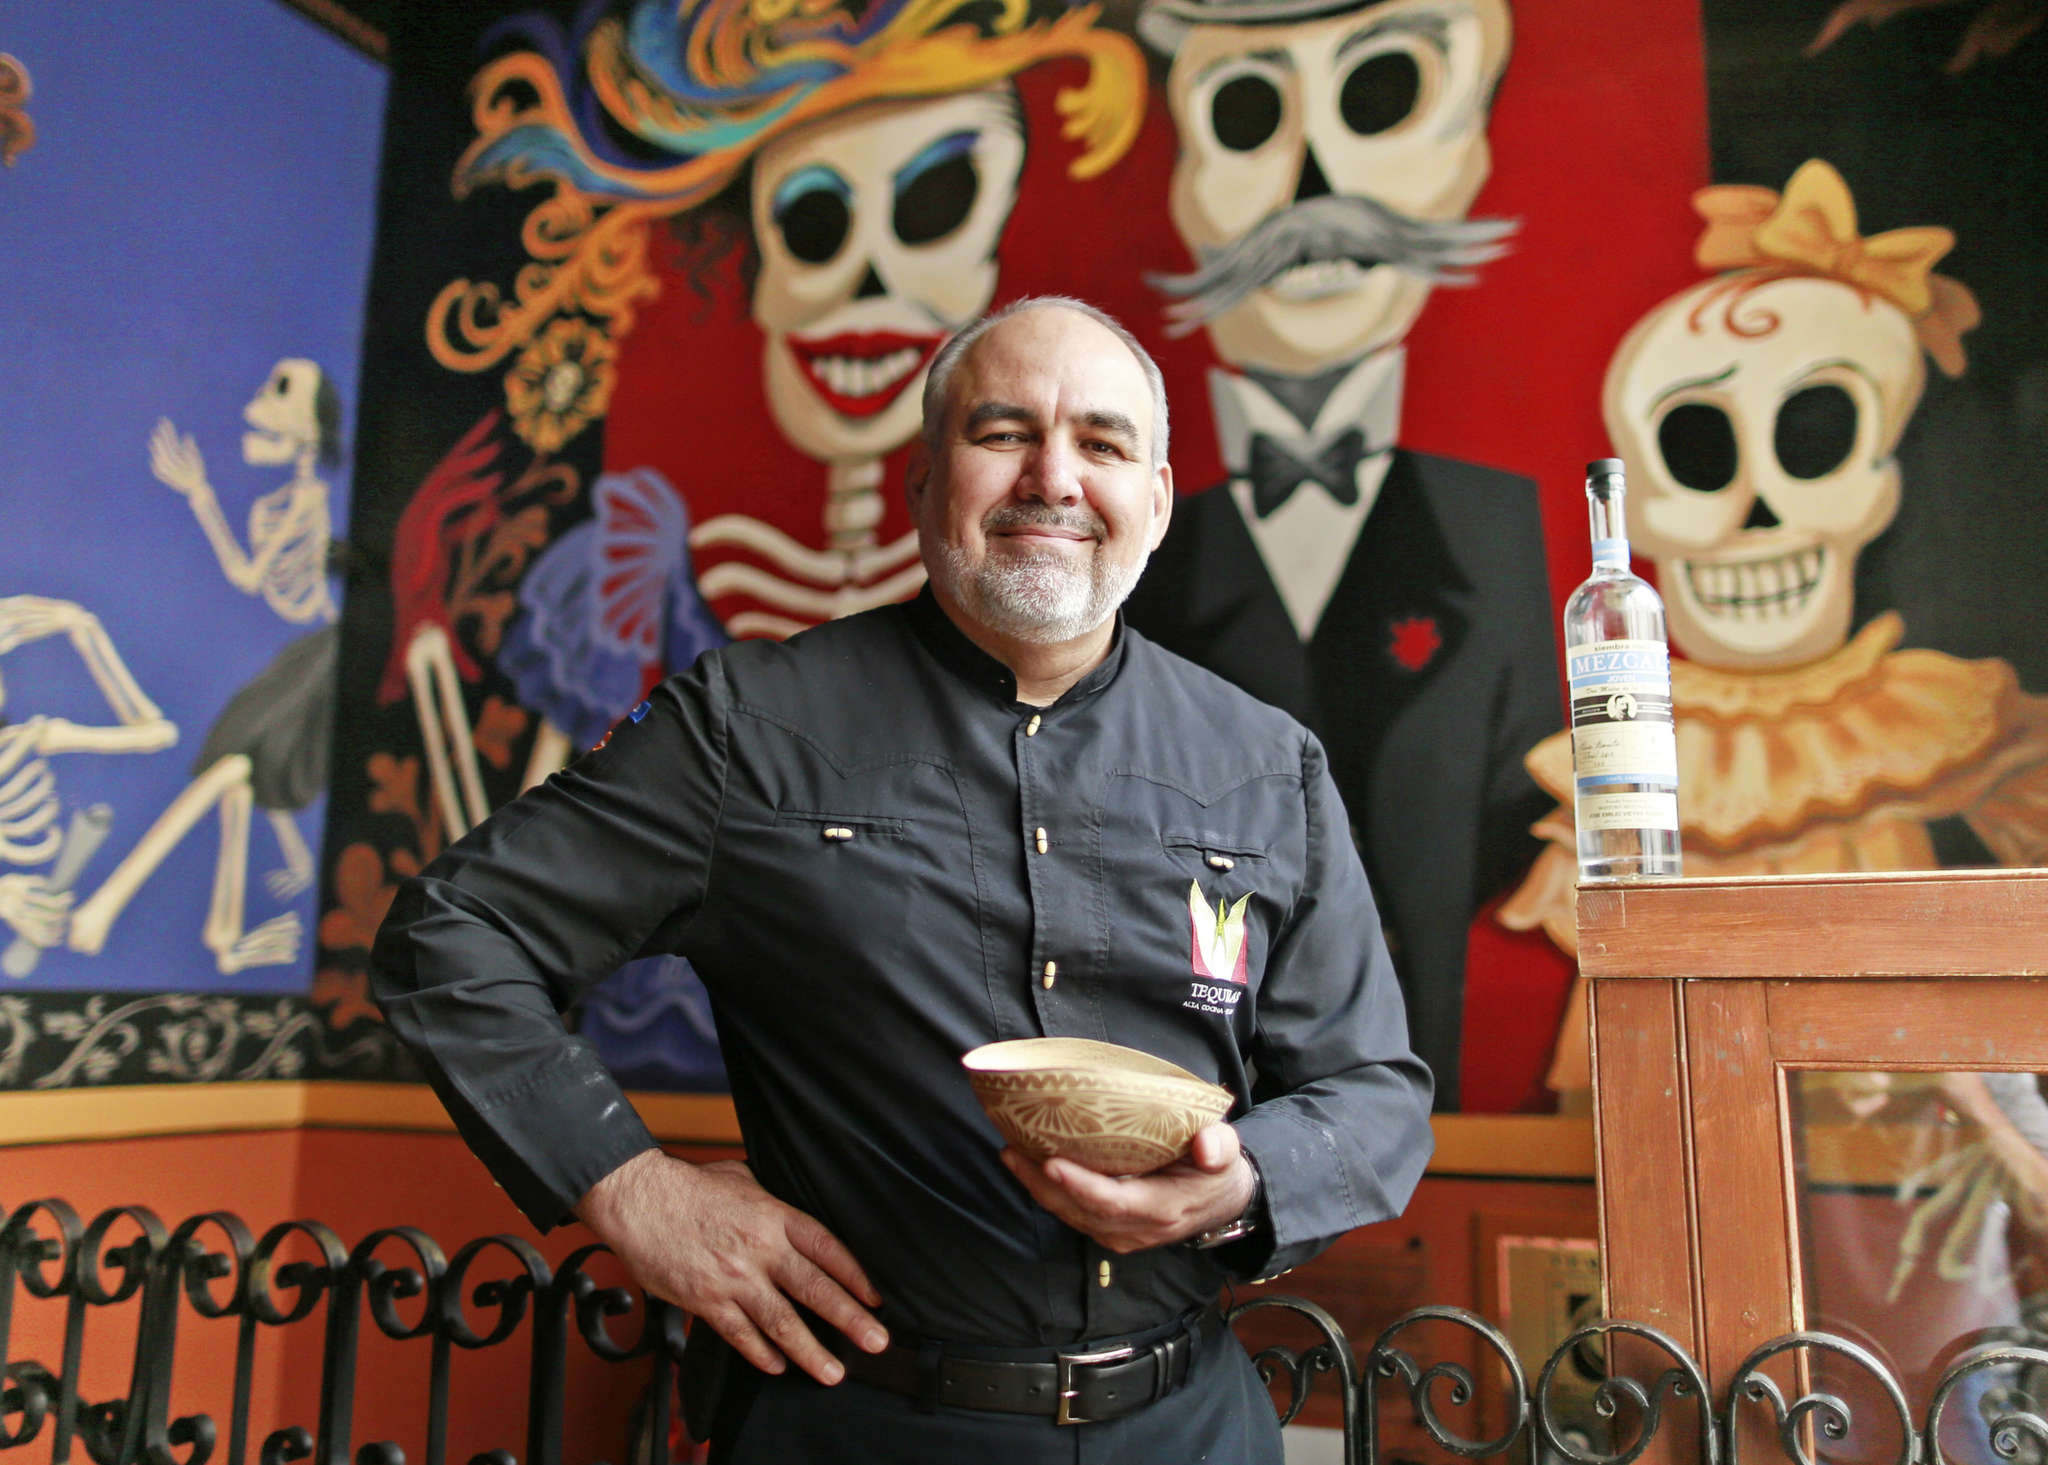 David Suro-Piñera , owner of Tequila´s, uses this traditional gourd cup to drink mescal. His company, Siembra Azul, featuring highlands tequila, recently expanded into mescal. DAVID SWANSON / Staff Photographer